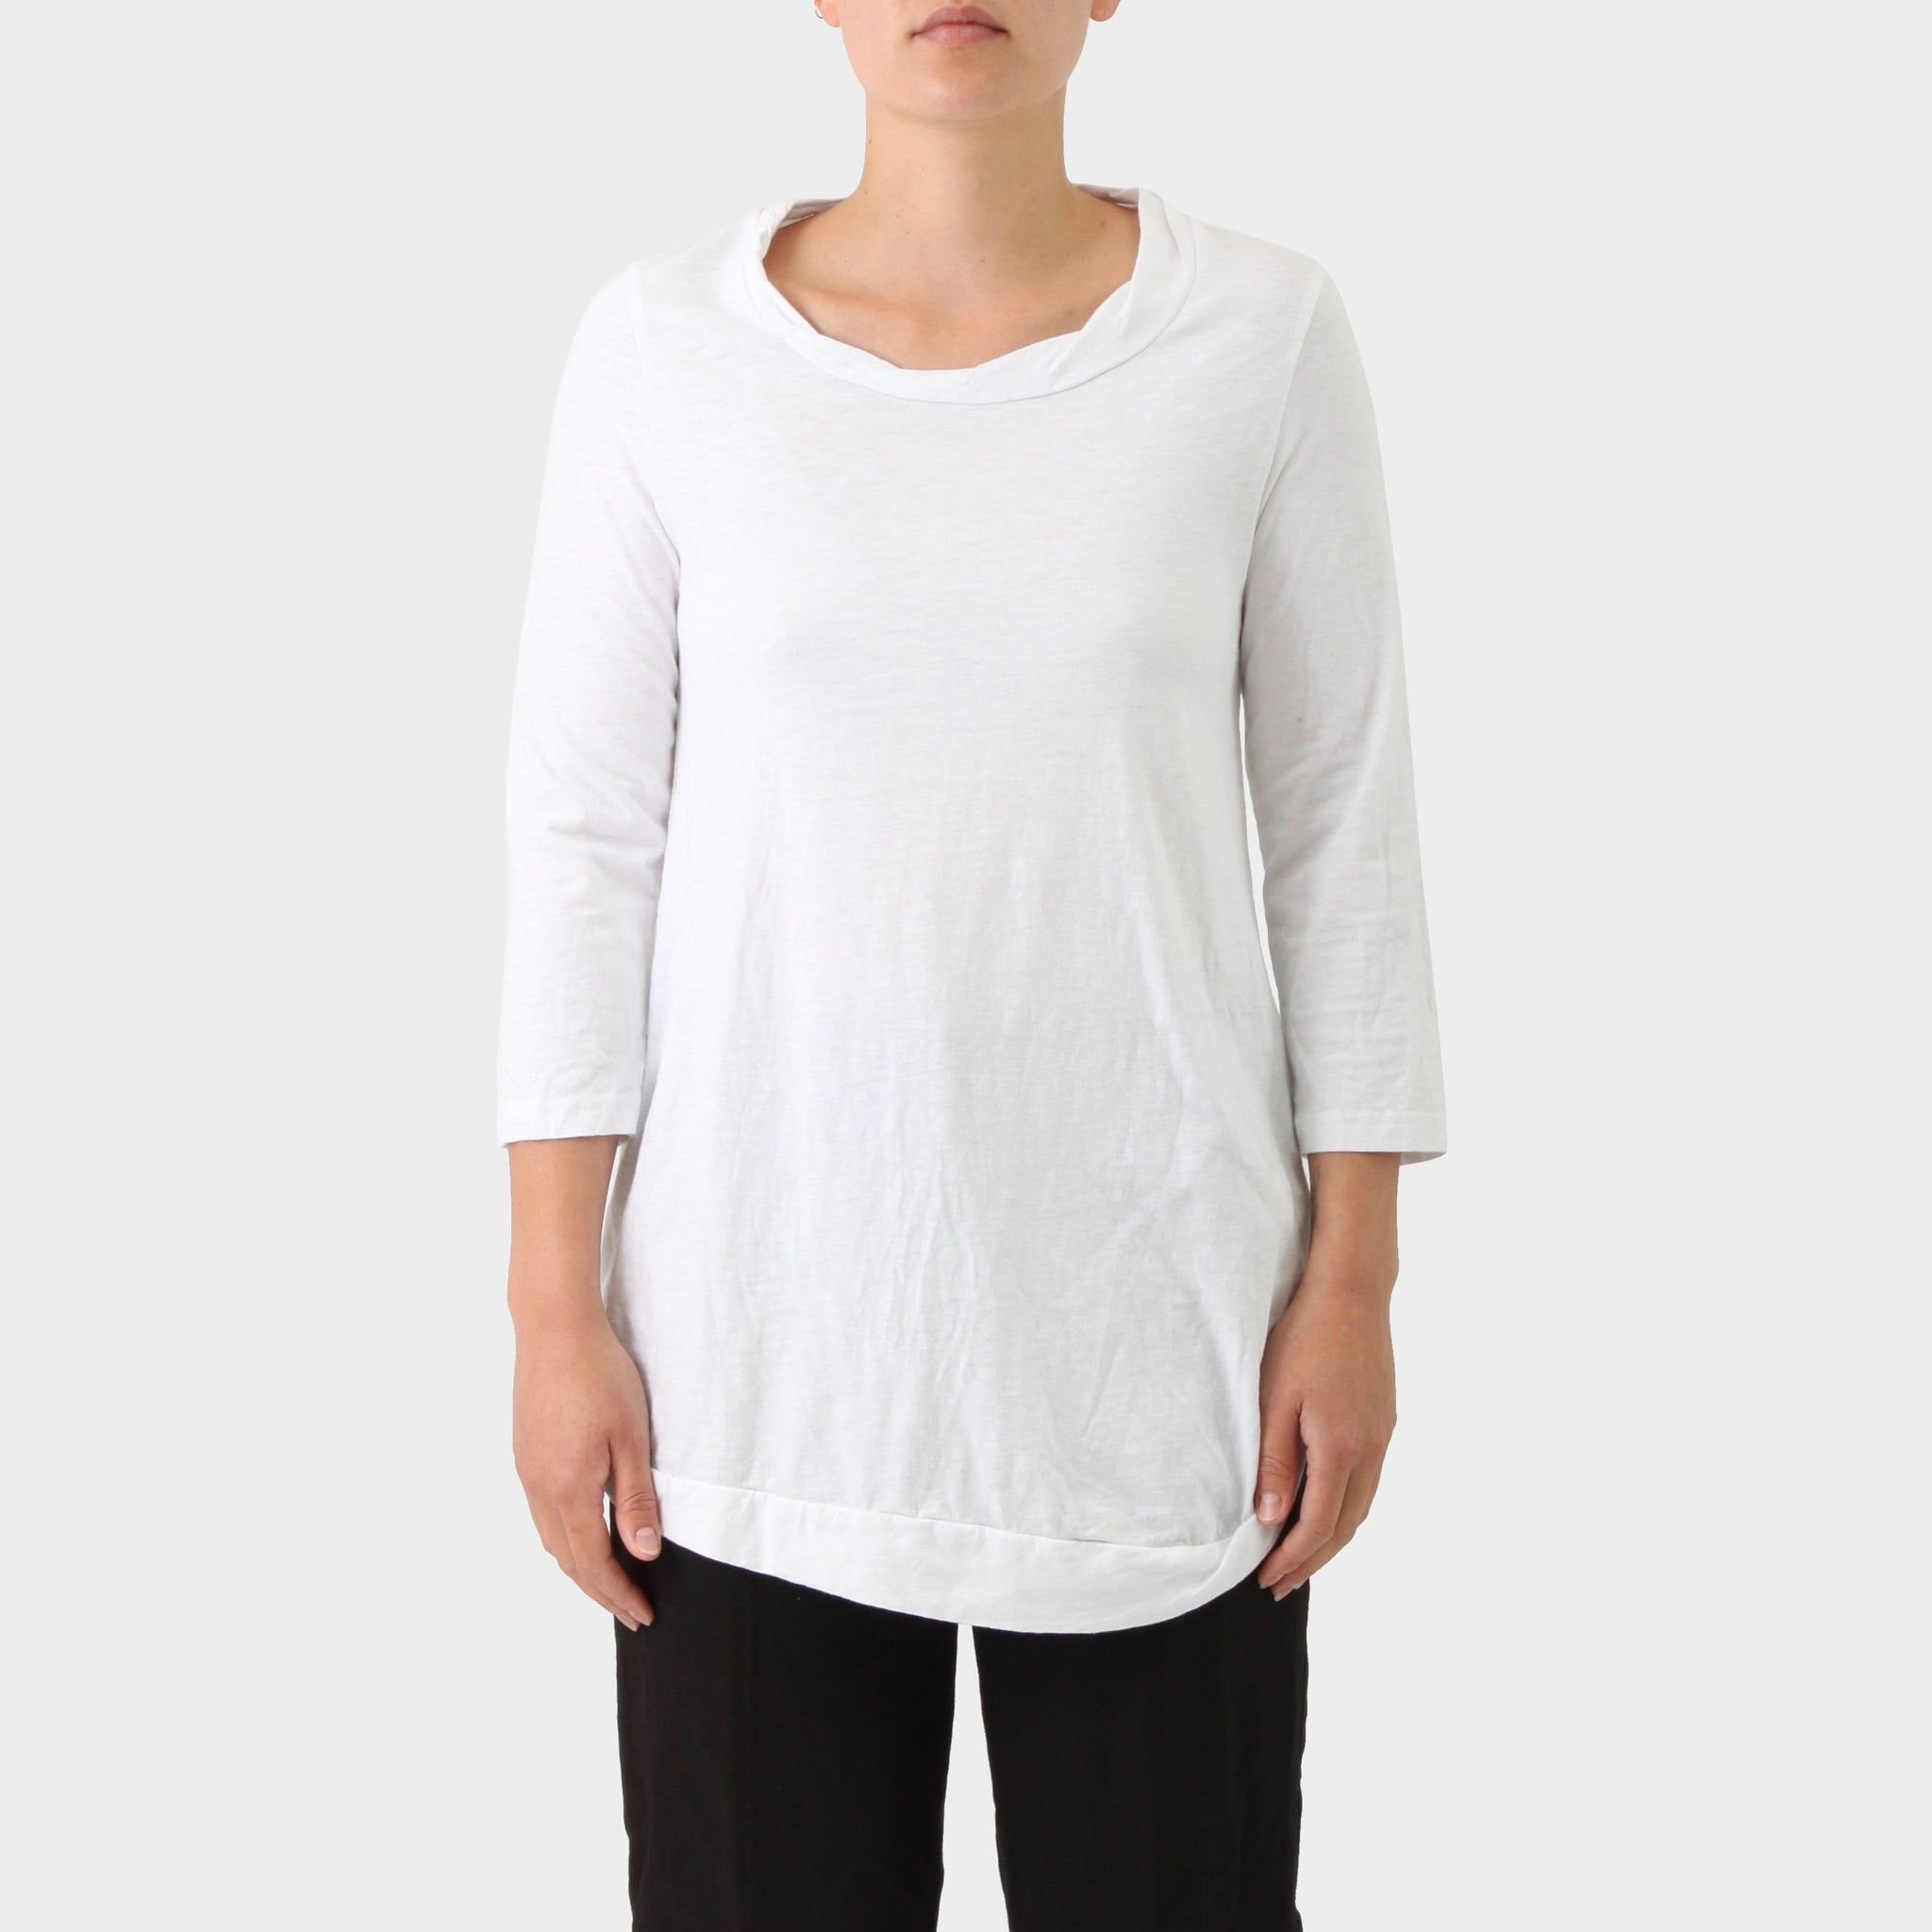 Rundholz Blk White Cotton 3/4 Sleeve T-shirt